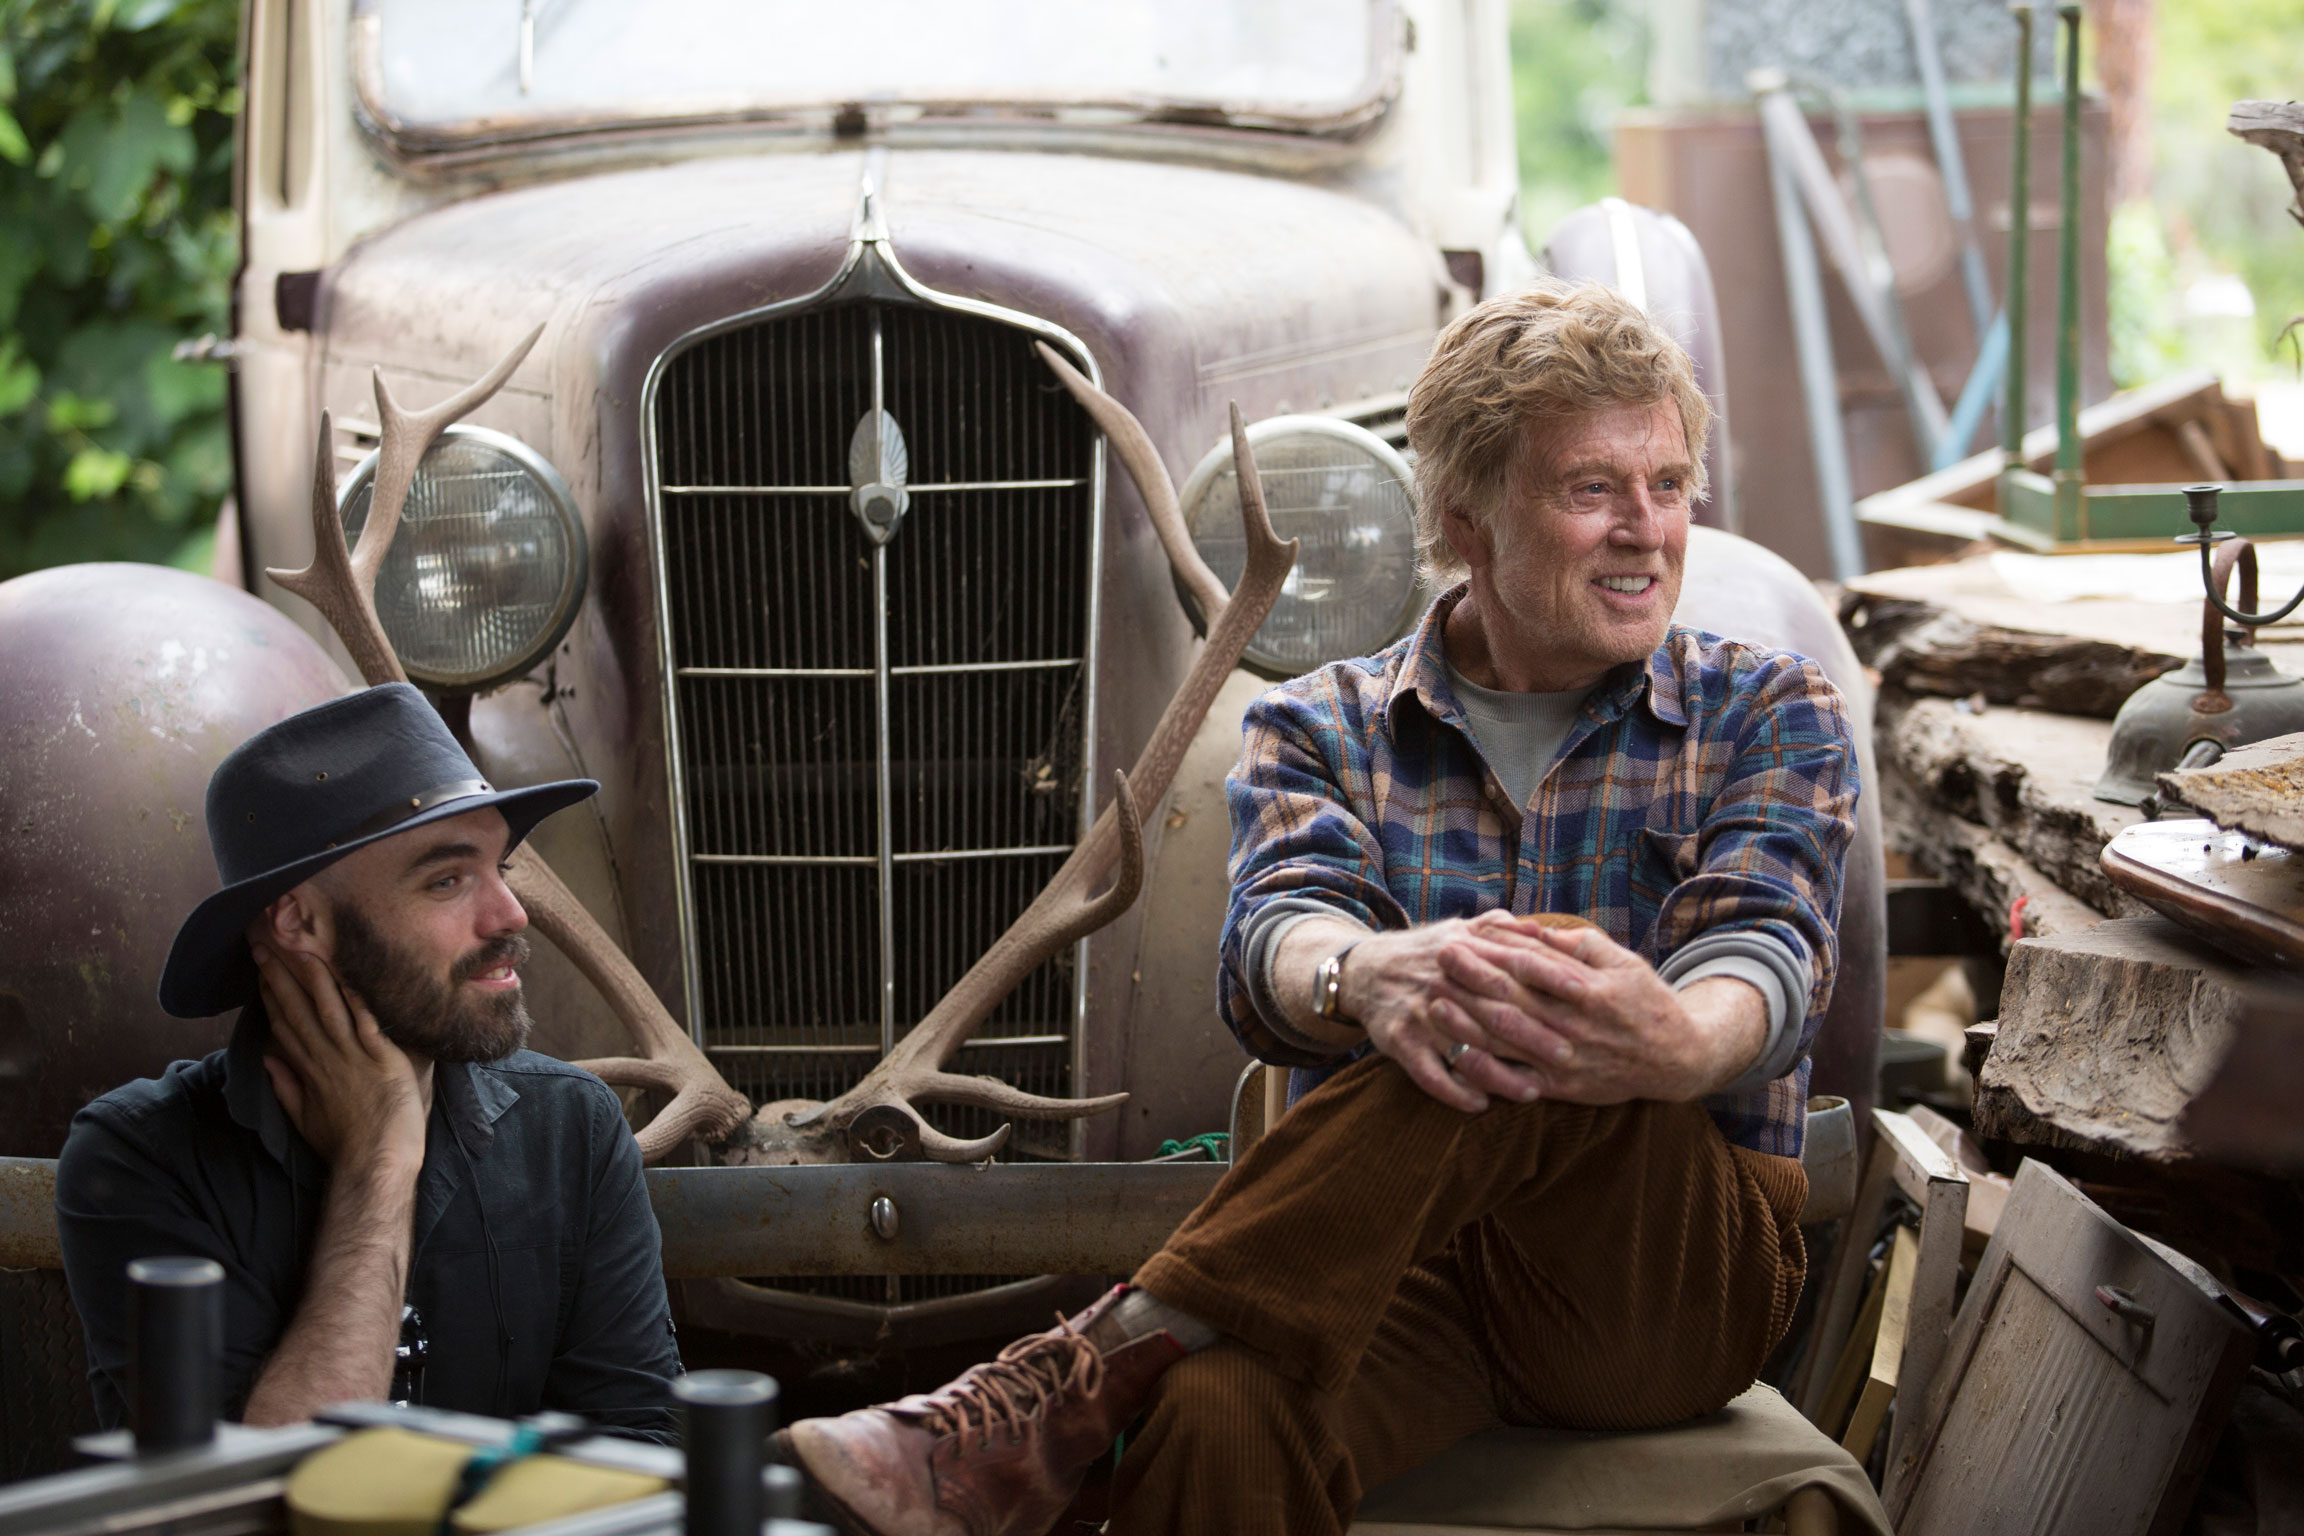 David Lowery directs screen legend Robert Redford on the set of 'Pete's Dragon' (image courtesy of Walt Disney Productions).(